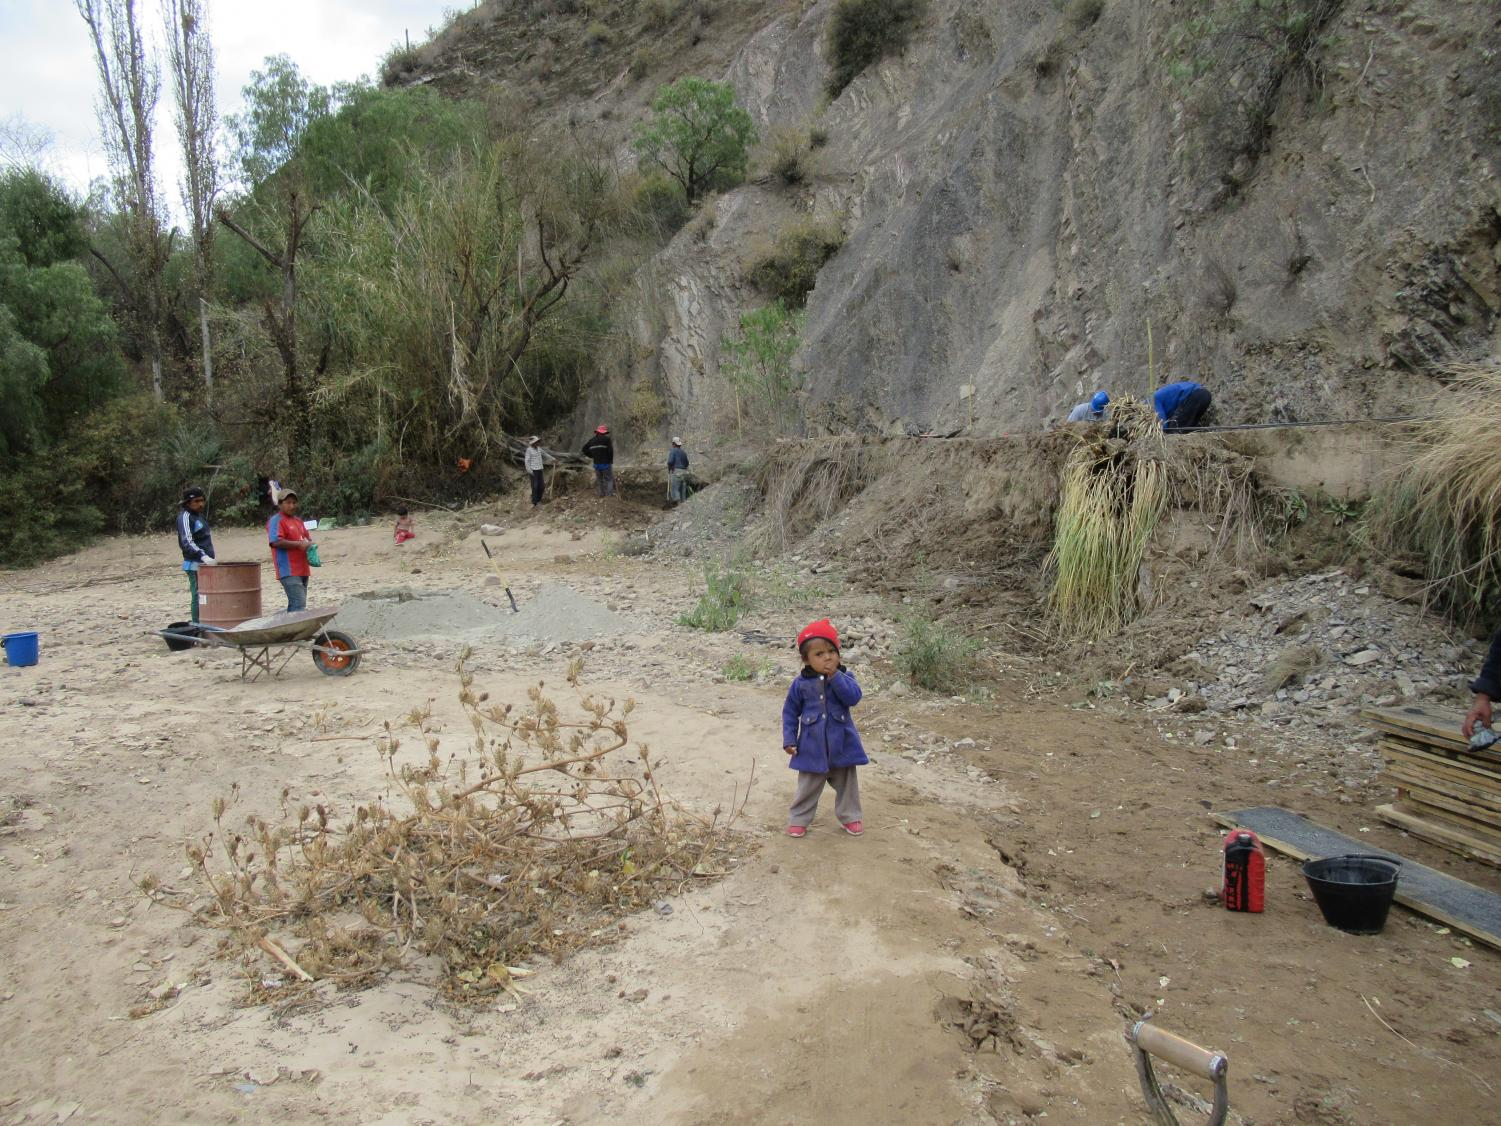 A project worksite in Bolivia attracts community laborers who often bring their children, pets, and elderly relatives. While student workers wearing hardhats work on an irrigation trench, a toddler meanders among workers who use local methods for mixing concrete with shovel and pail – a practice that violates multiple workplace safety procedures practiced in the industrialized world.